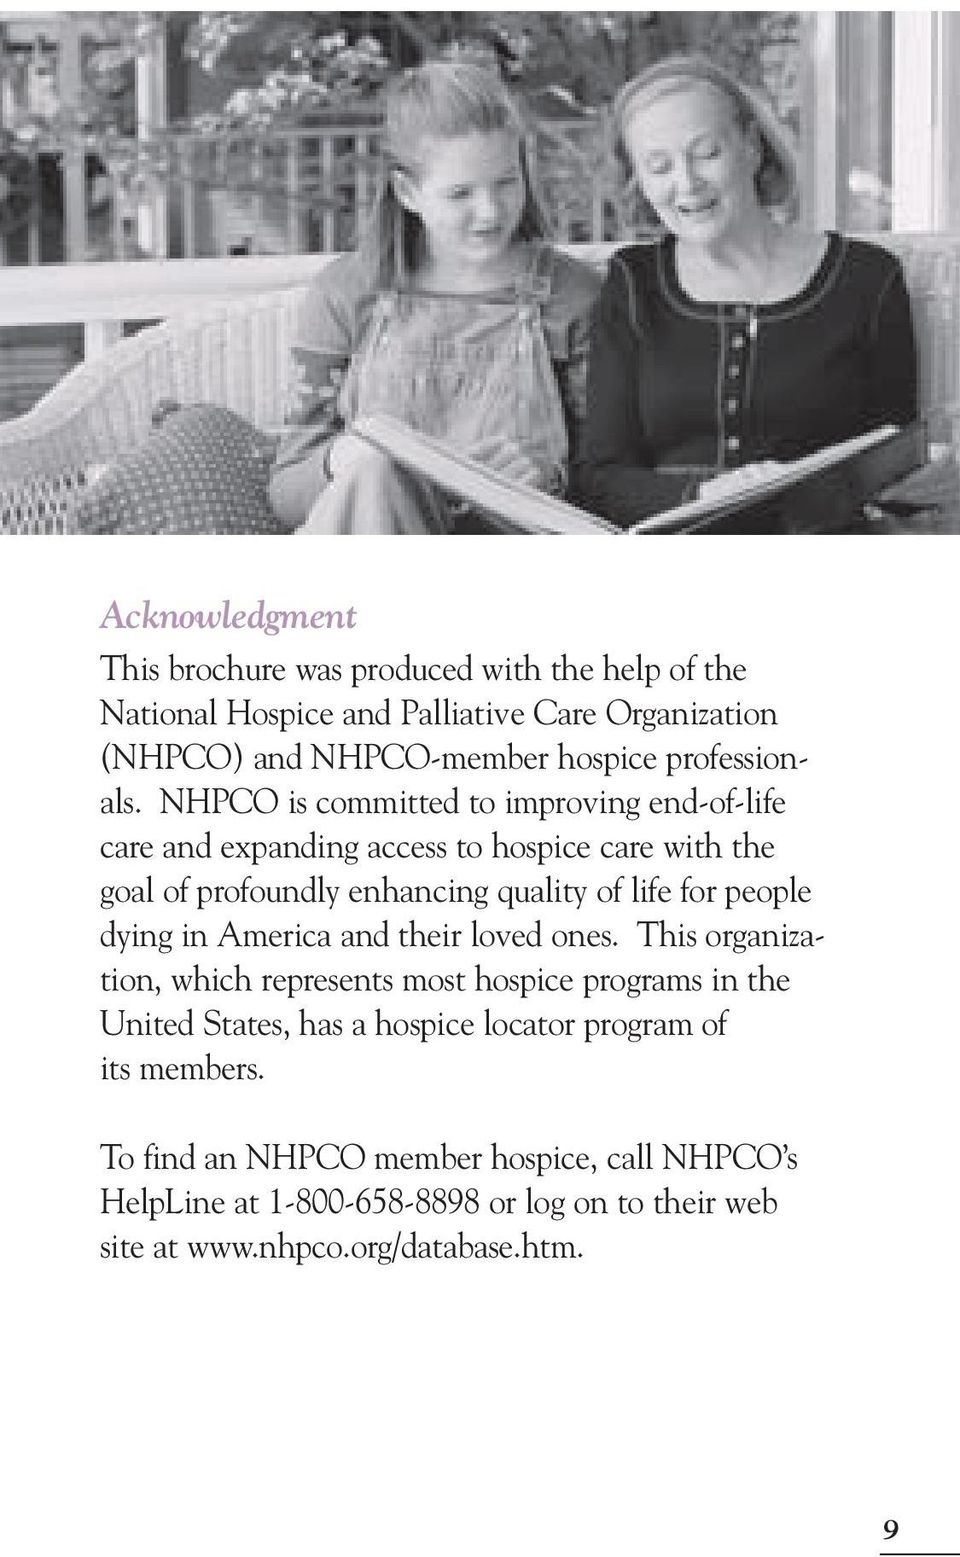 NHPCO is committed to improving end-of-life care and expanding access to hospice care with the goal of profoundly enhancing quality of life for people